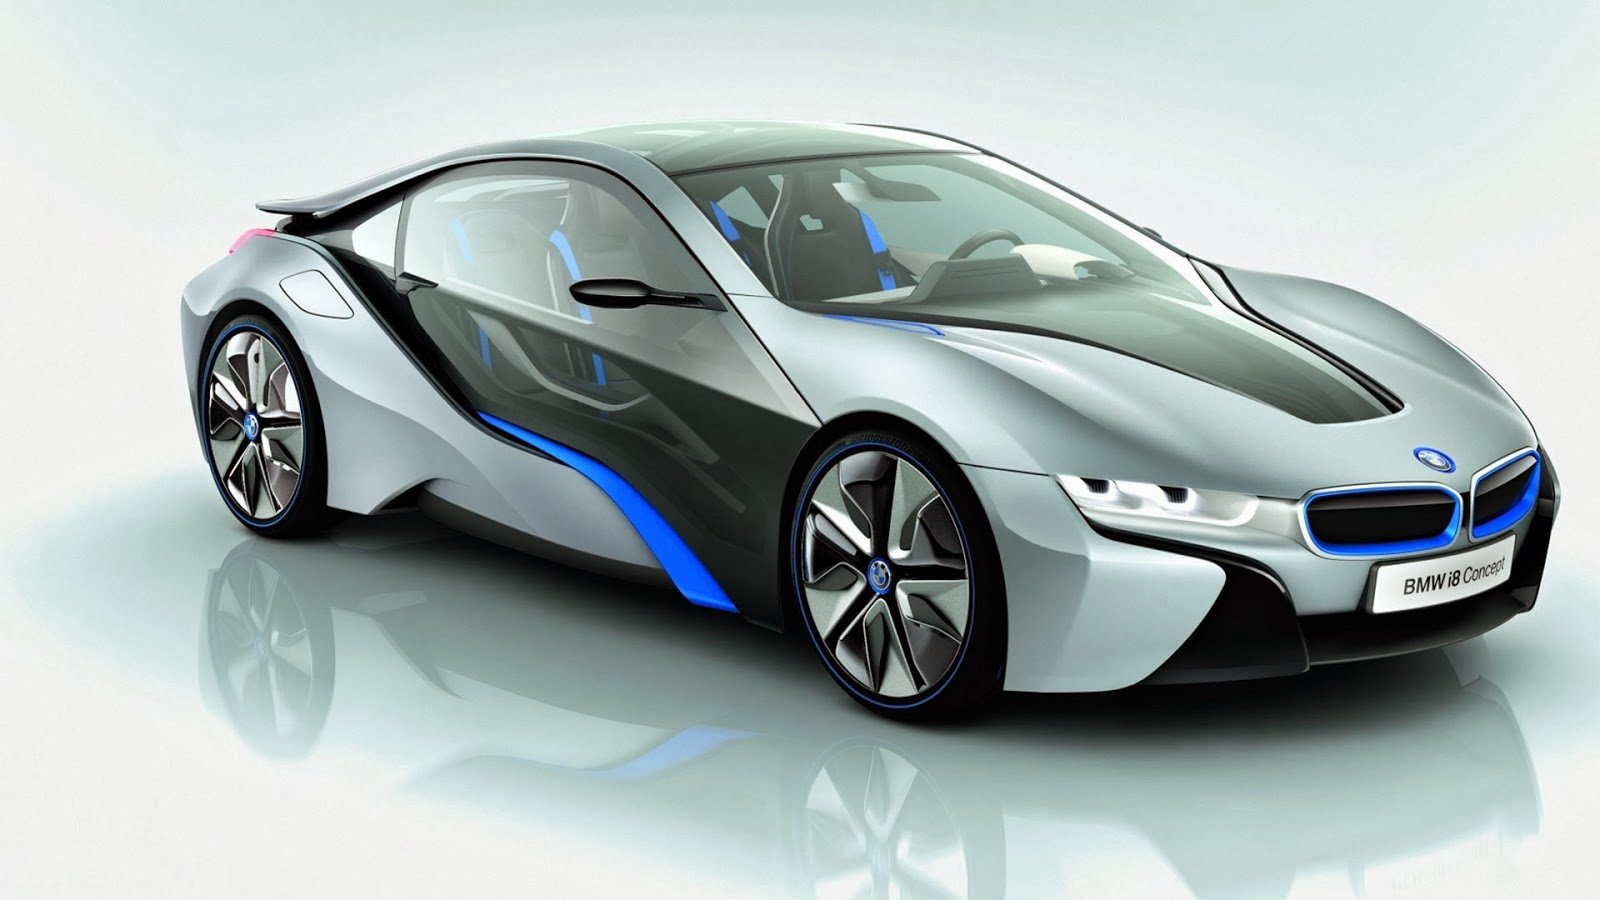 Latest Hd Wallpapers Download Bmw I8 Cars Hd Wallpapers 1080P Free Download